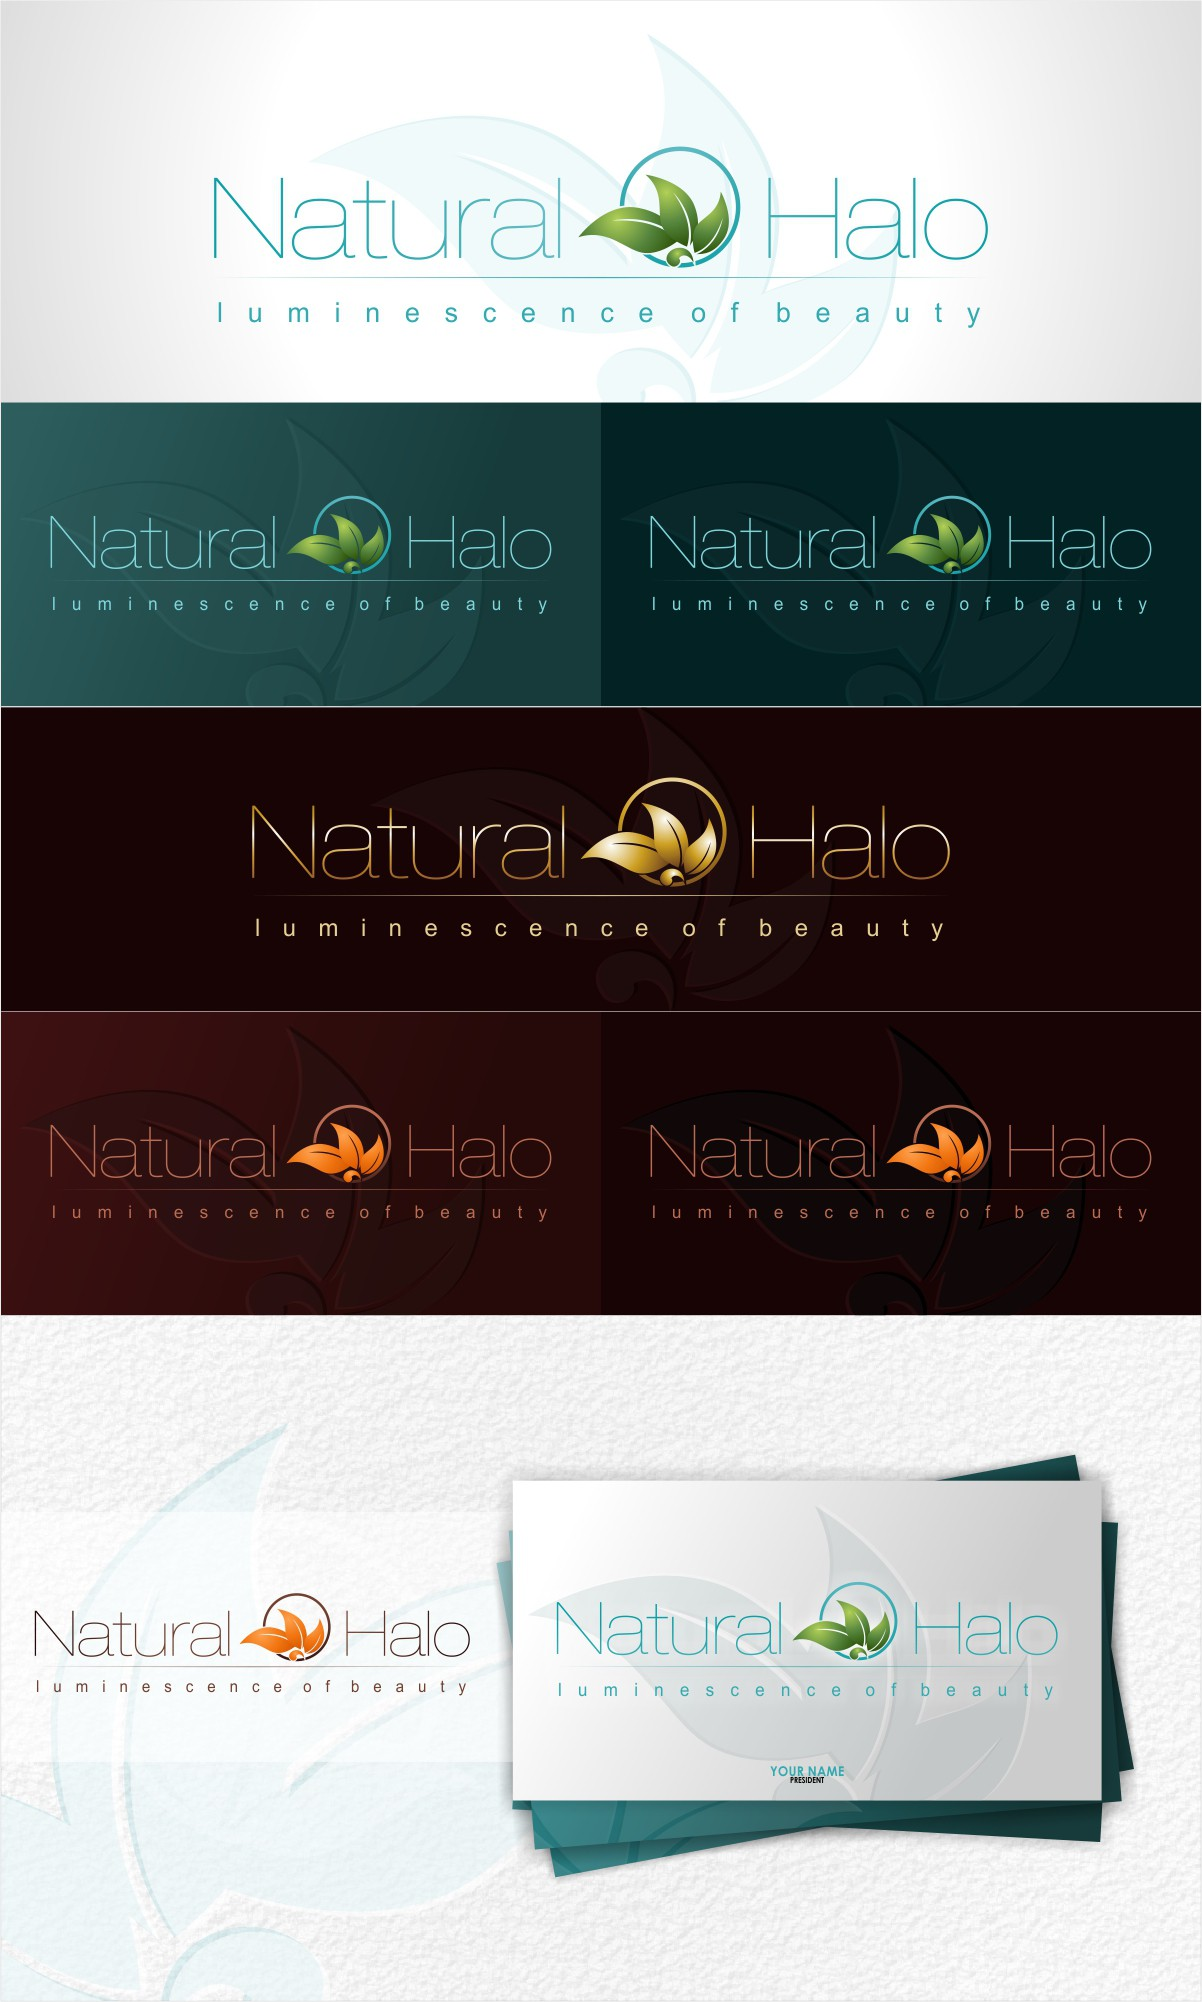 Create the next logo for Natural Halo